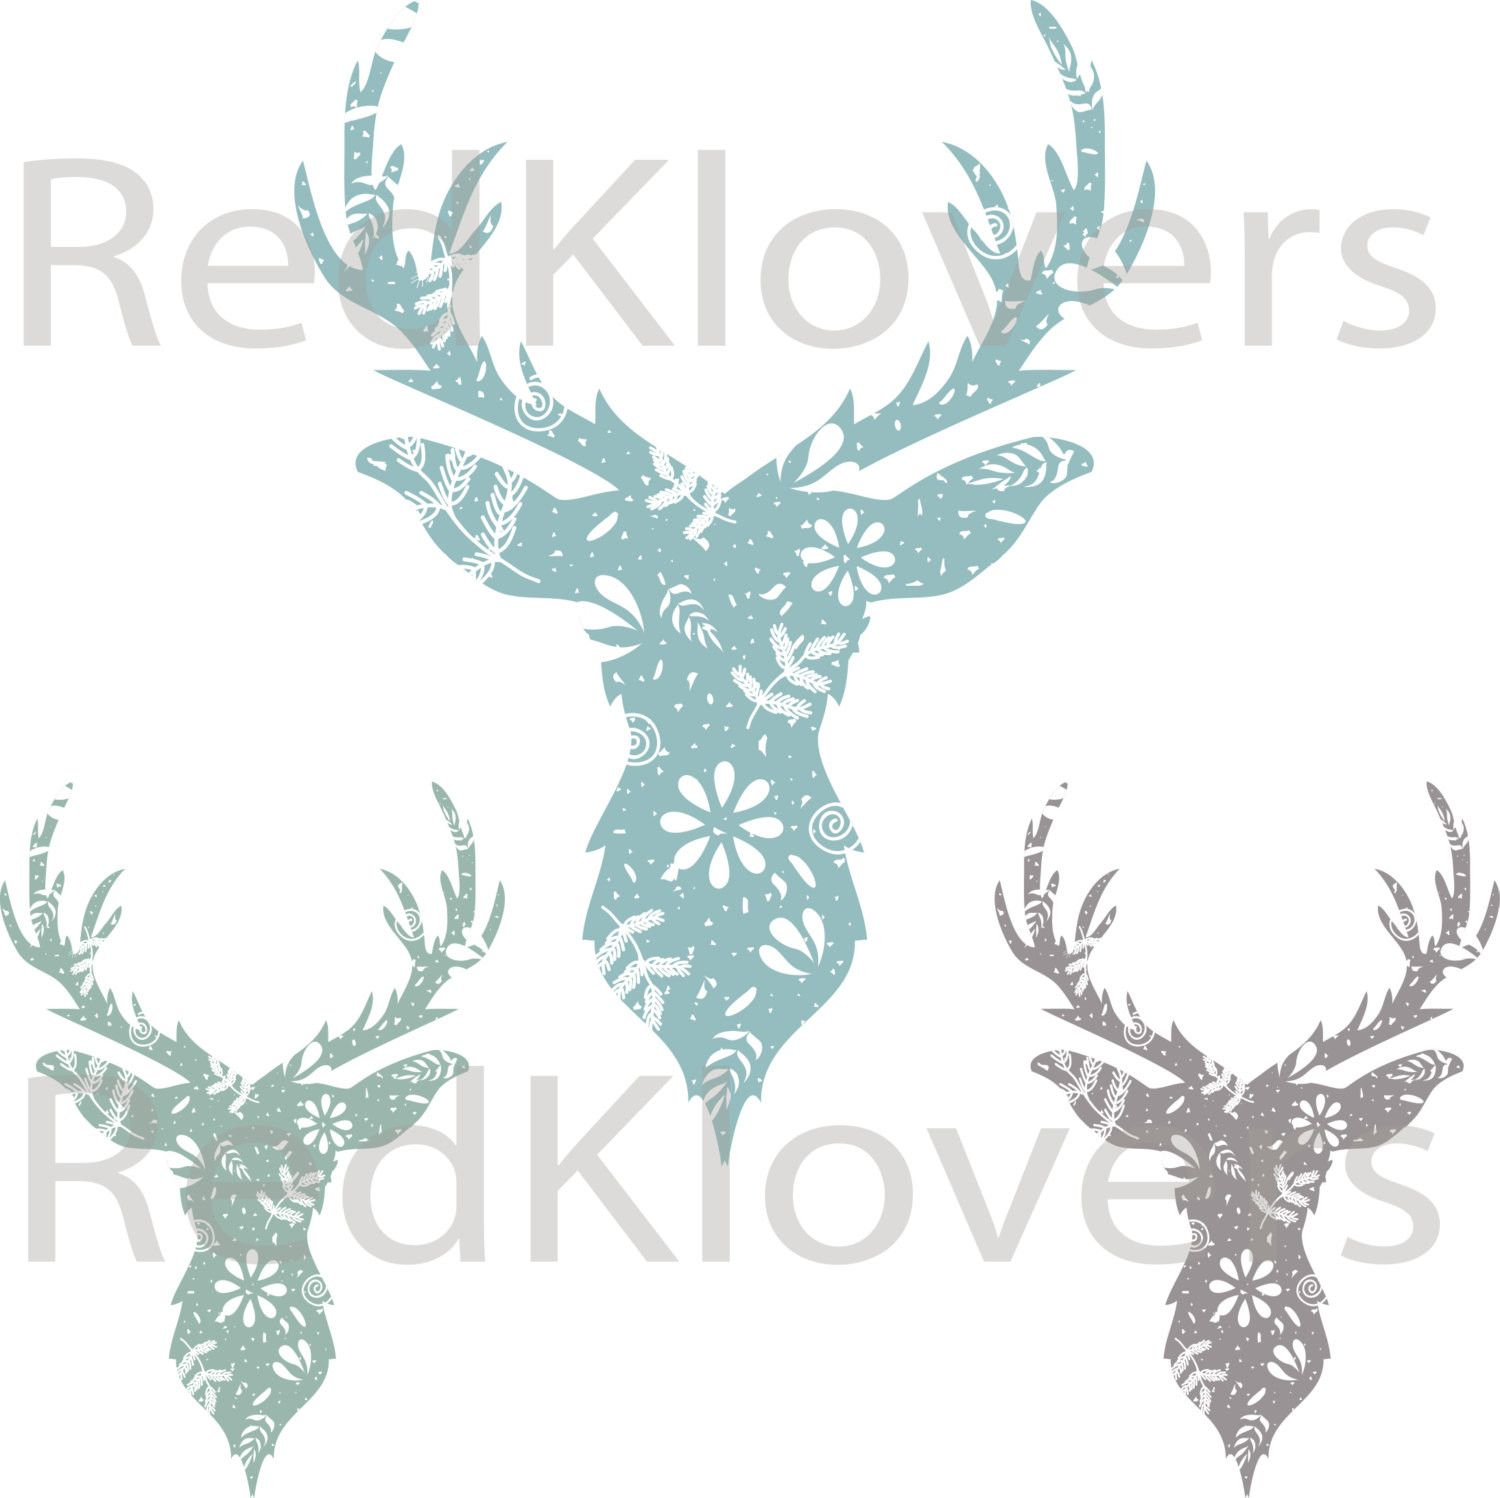 free vector Deer Head clip art graphic available for free